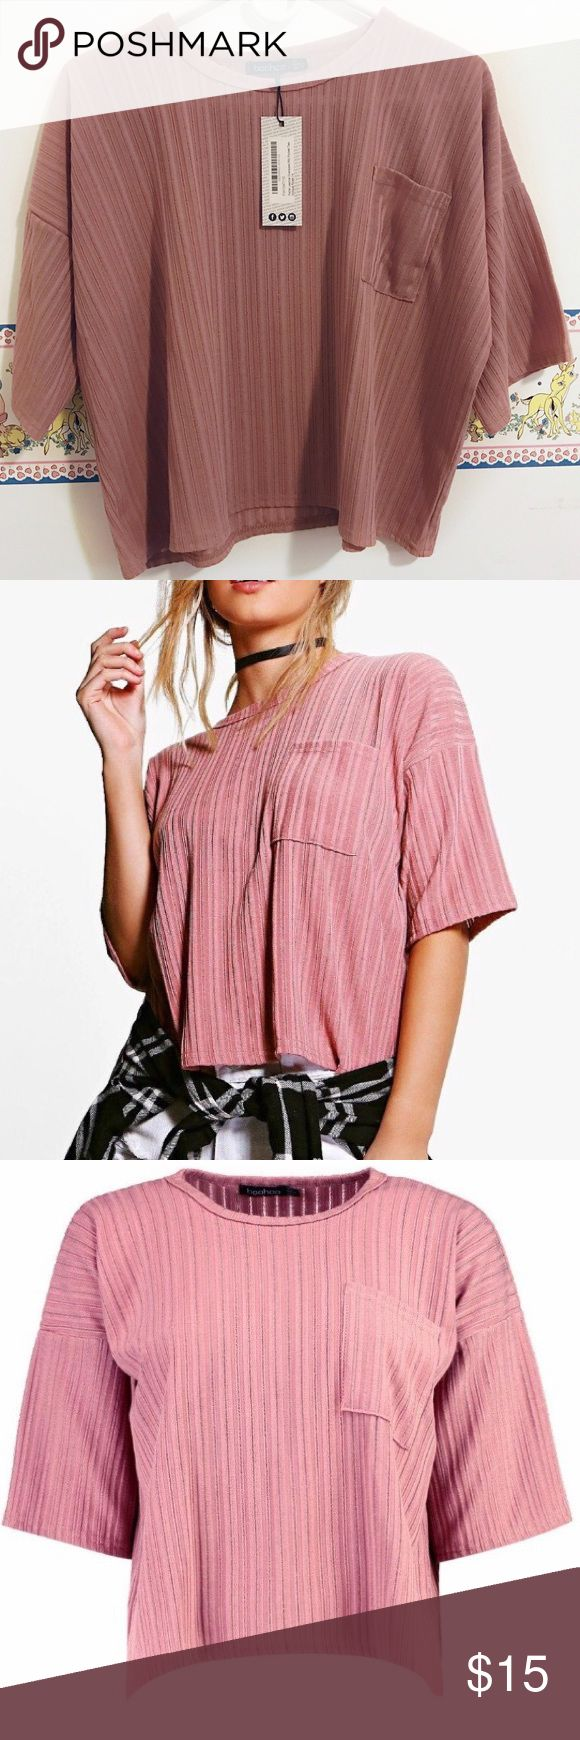 """Oversized Slouchy Ribbed Top 🌷beautiful dusty pink shade. comes from the petite line of boohoo so it might fit more cropped on a taller person, i'm 5'3 and it hit in the same place as in the picture, around the belly button.  🌷new with tags; small hole right on top of the pocket 🌷approximations: length 20"""", bust 48"""", has a little stretch. Boohoo Tops"""